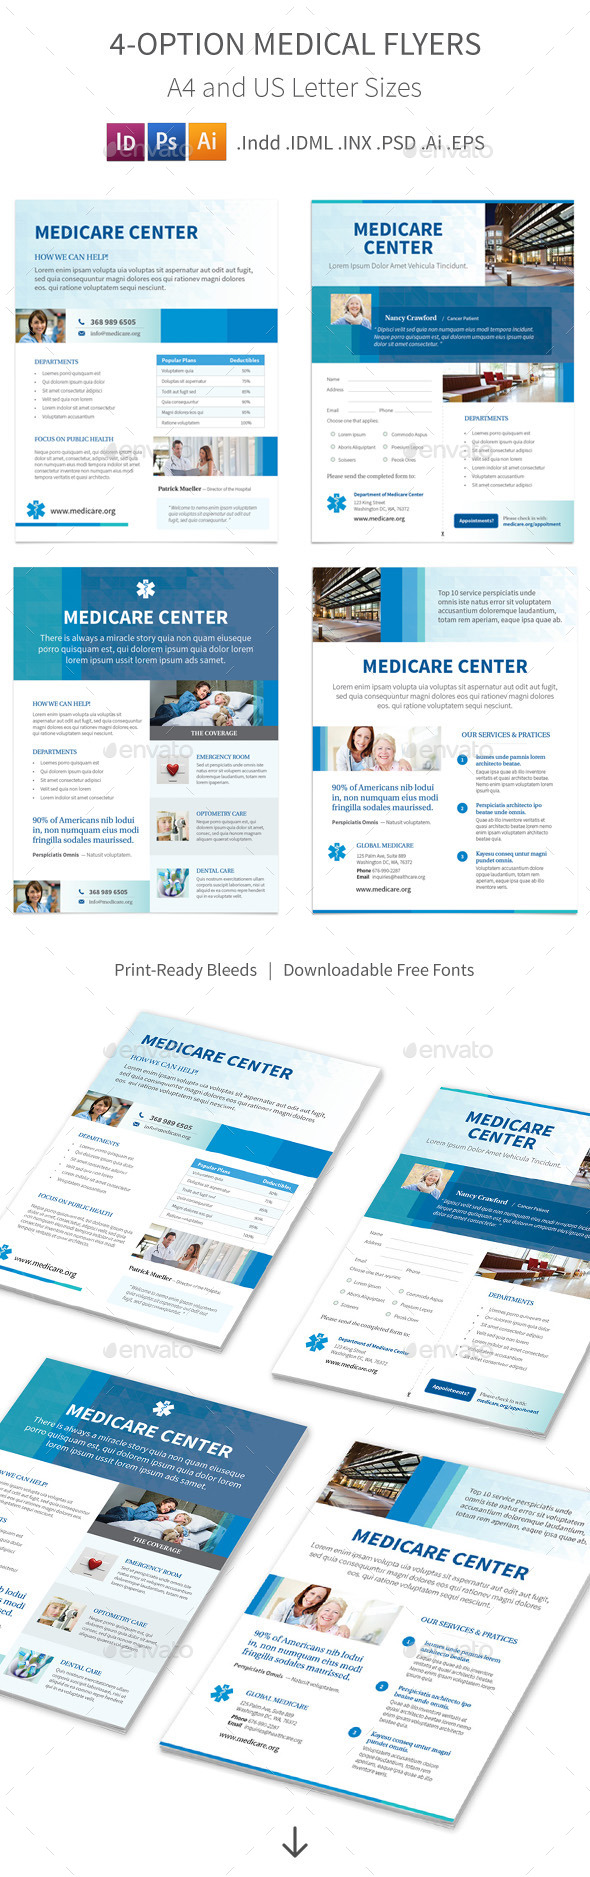 Medical Flyers – 4 Options - Corporate Flyers